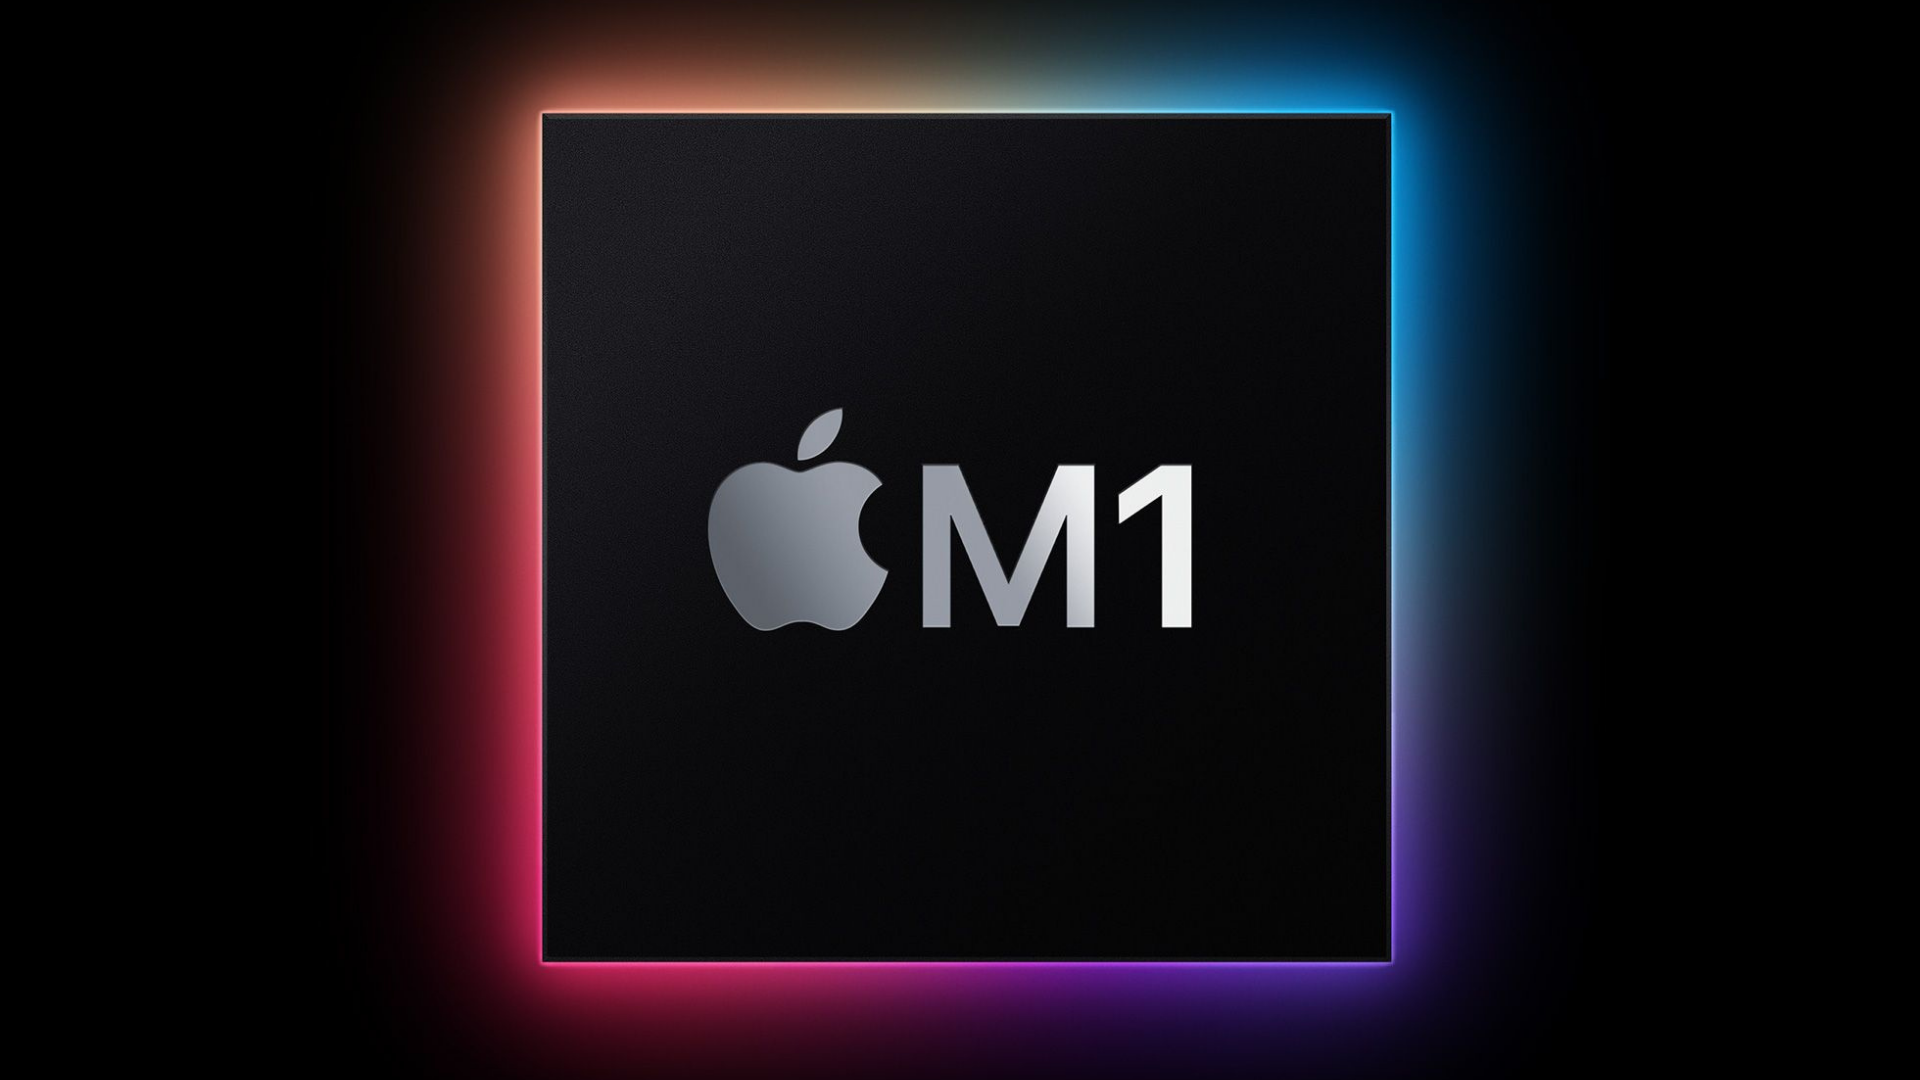 Is the new M1-powered iMac worth it?